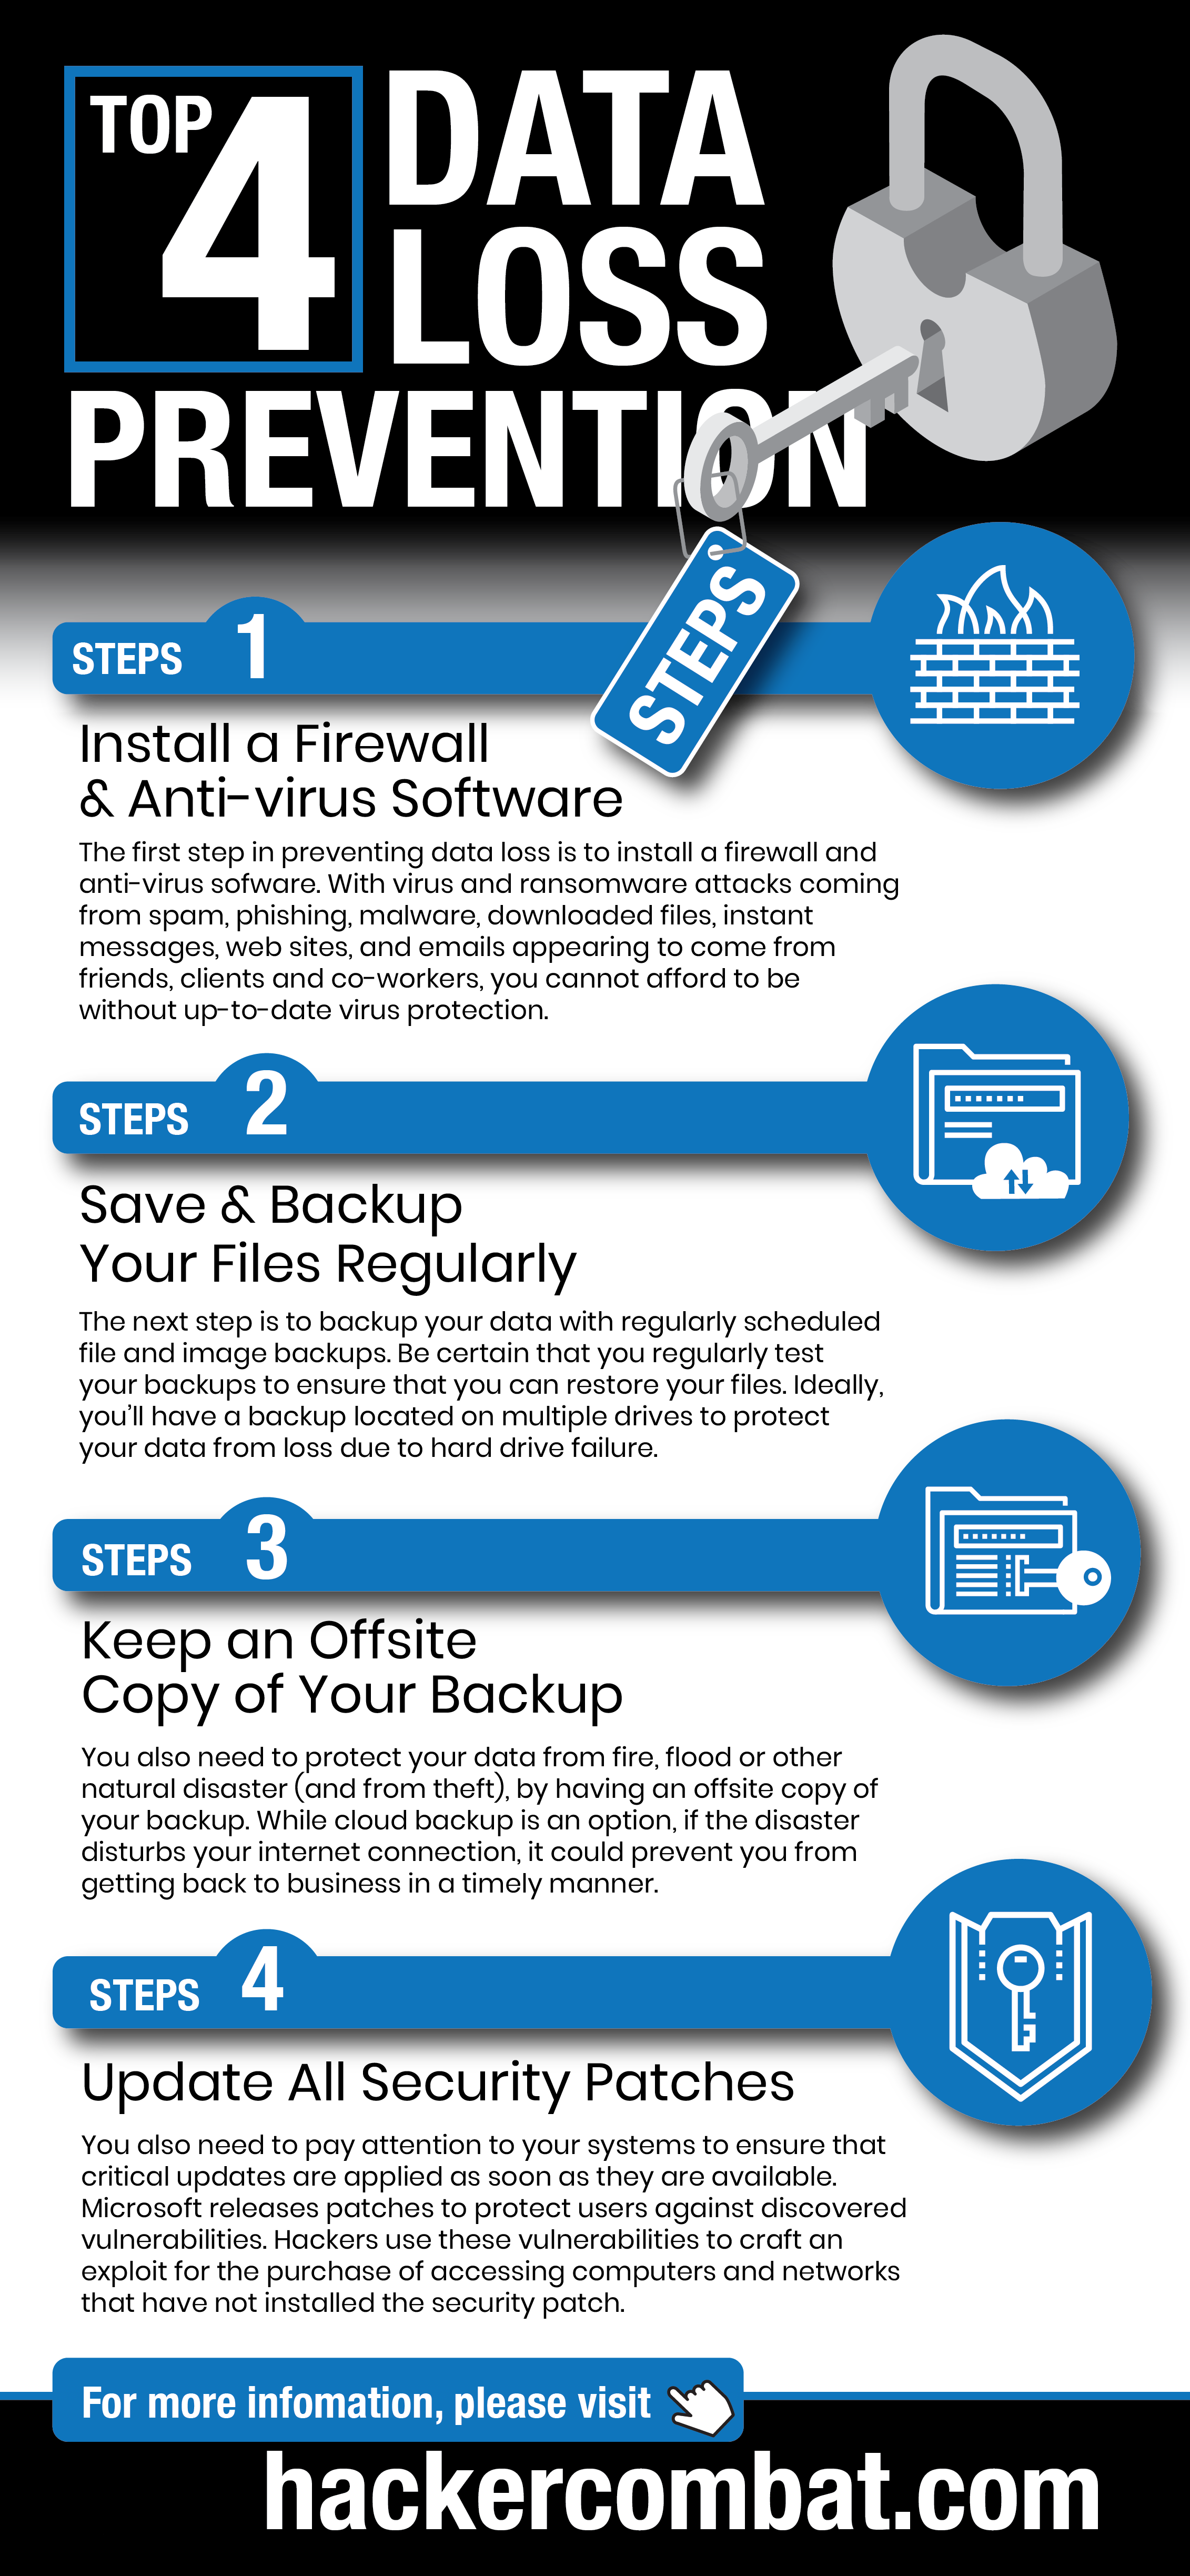 Data Loss Prevention Tips [Infographic]